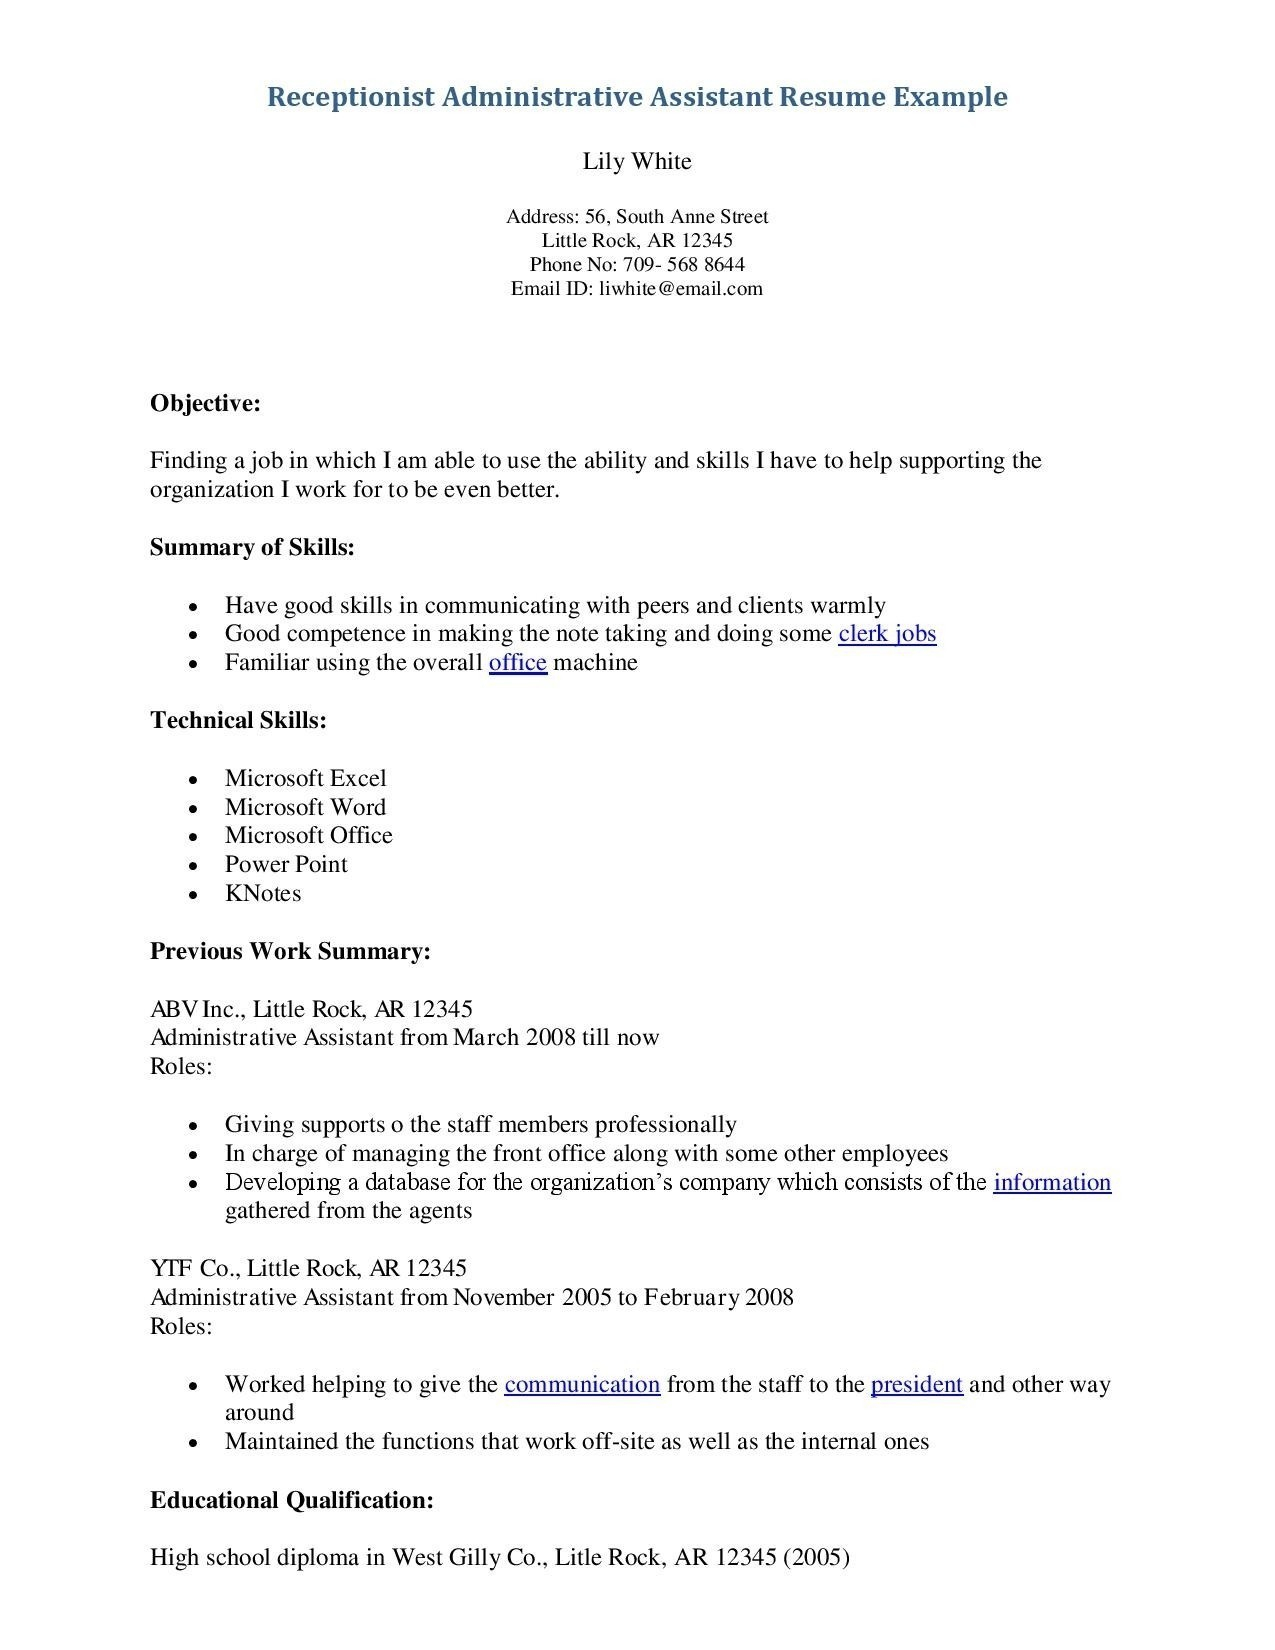 Resume Objective Examples  Receptionist Resume Sample Pdf New Resume Objective Examples For